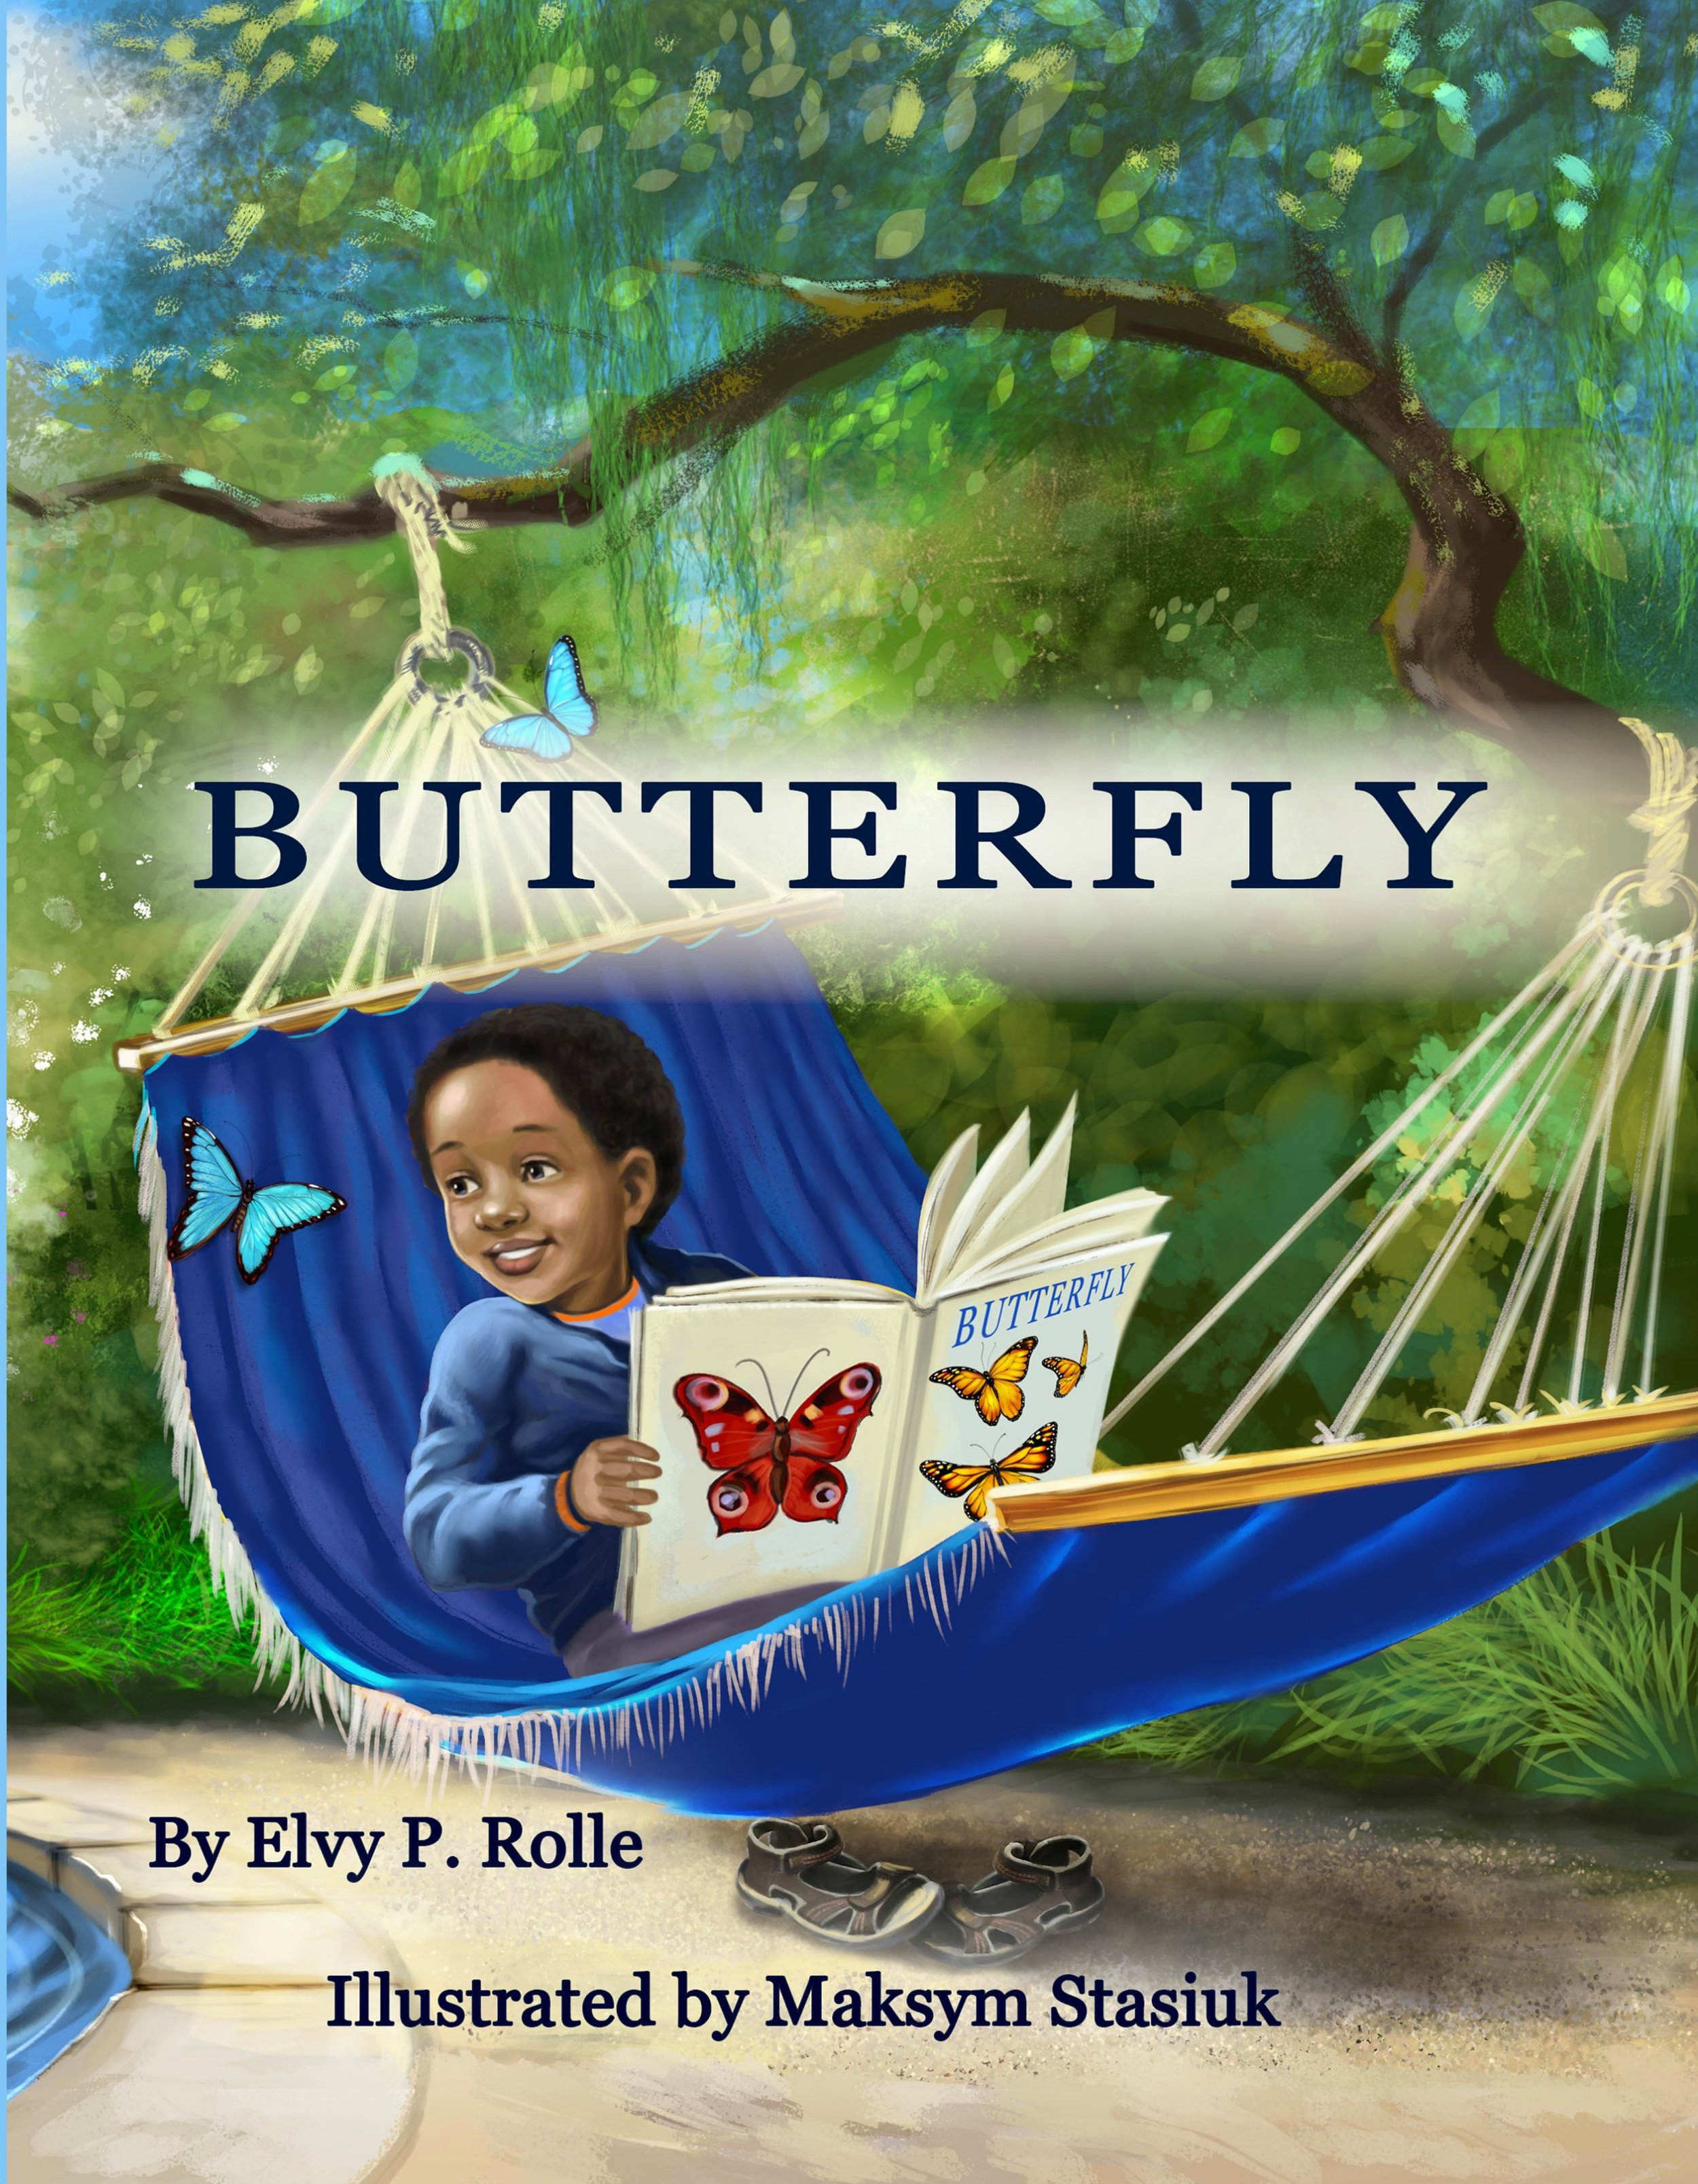 Revised-Butterfly-Front-Cover.jpg